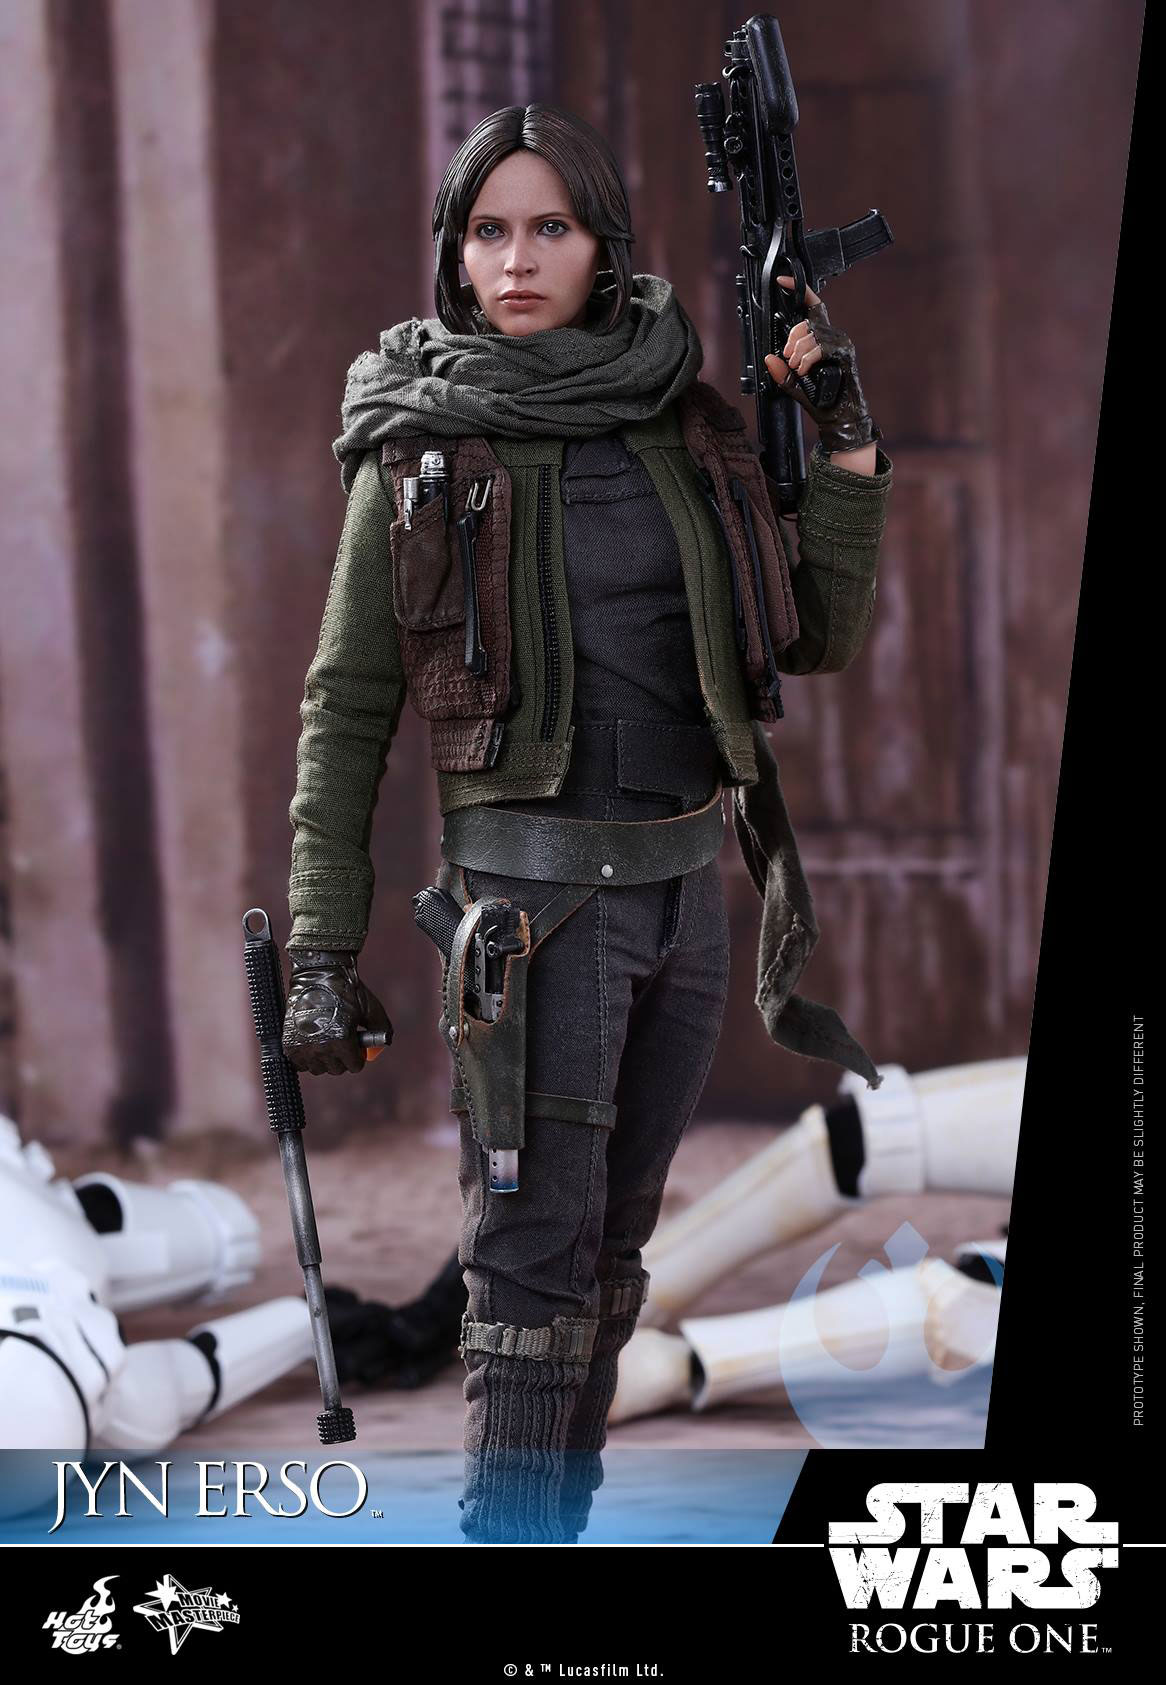 hot-toys-star-wars-rogue-one-jyn-erso-figure-4